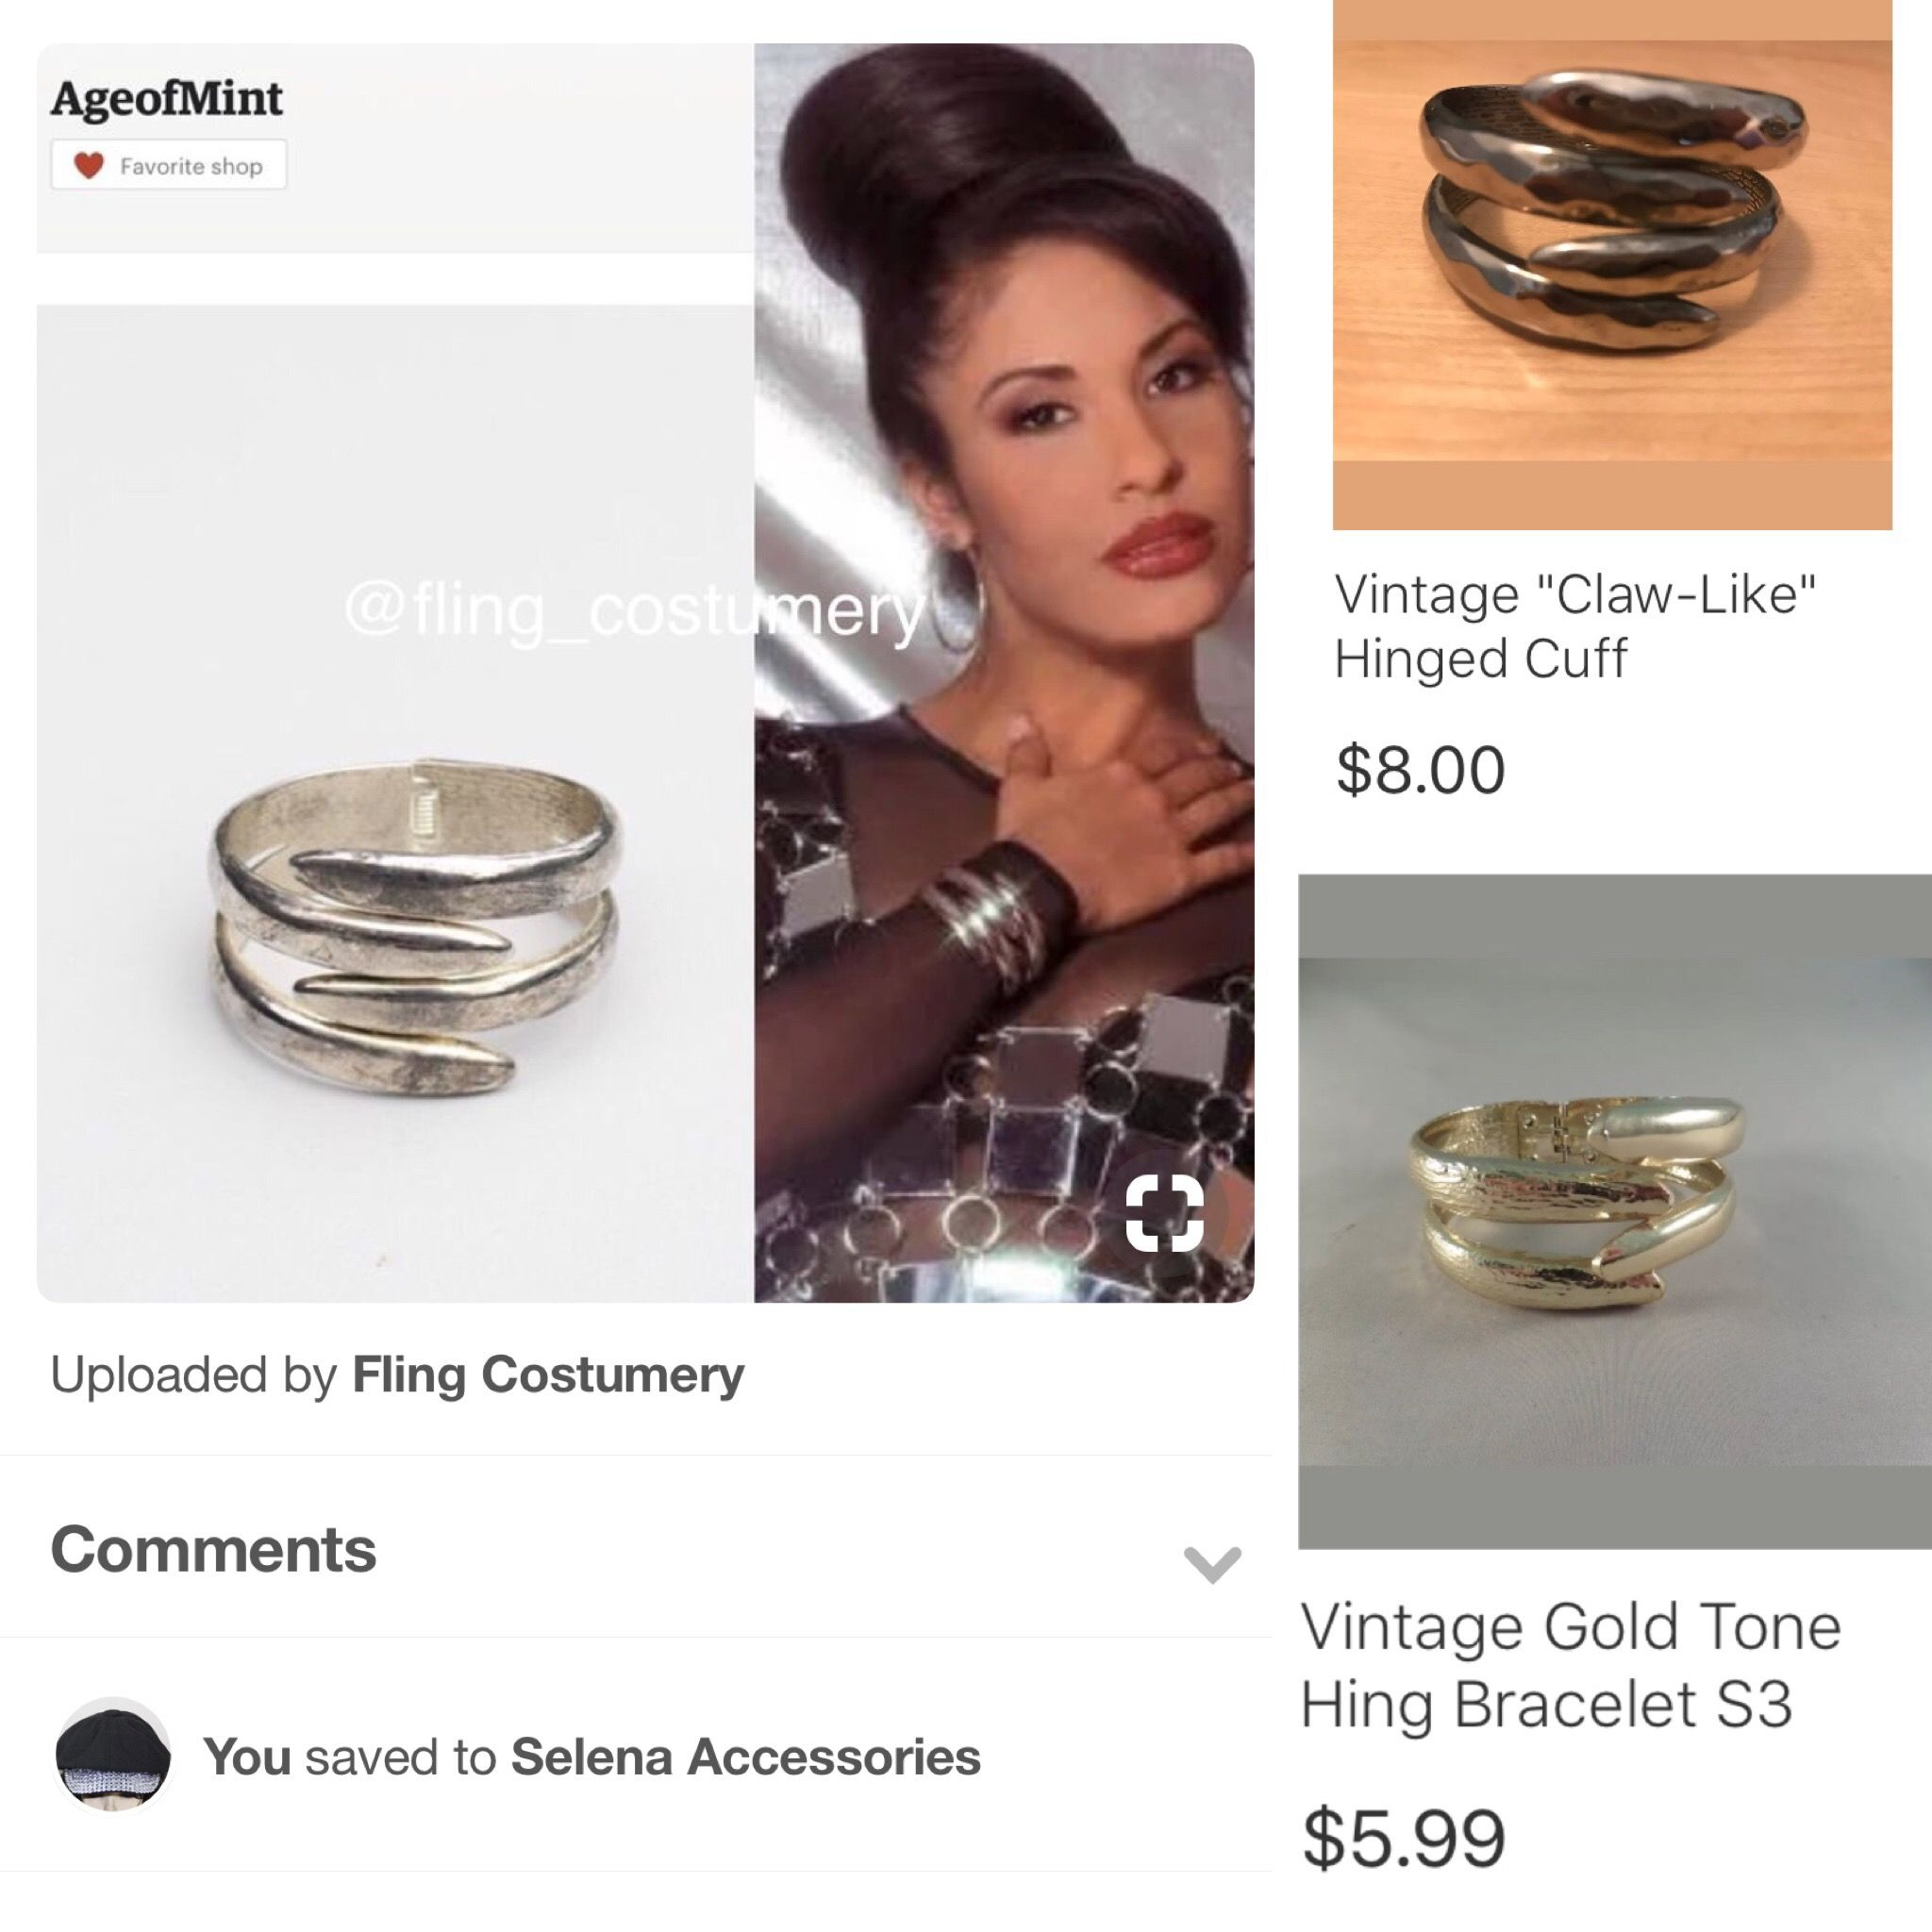 Pin By Fling Costumery On Selena Accessories Selena Quintanilla Fashion Selena Selena Quintanilla